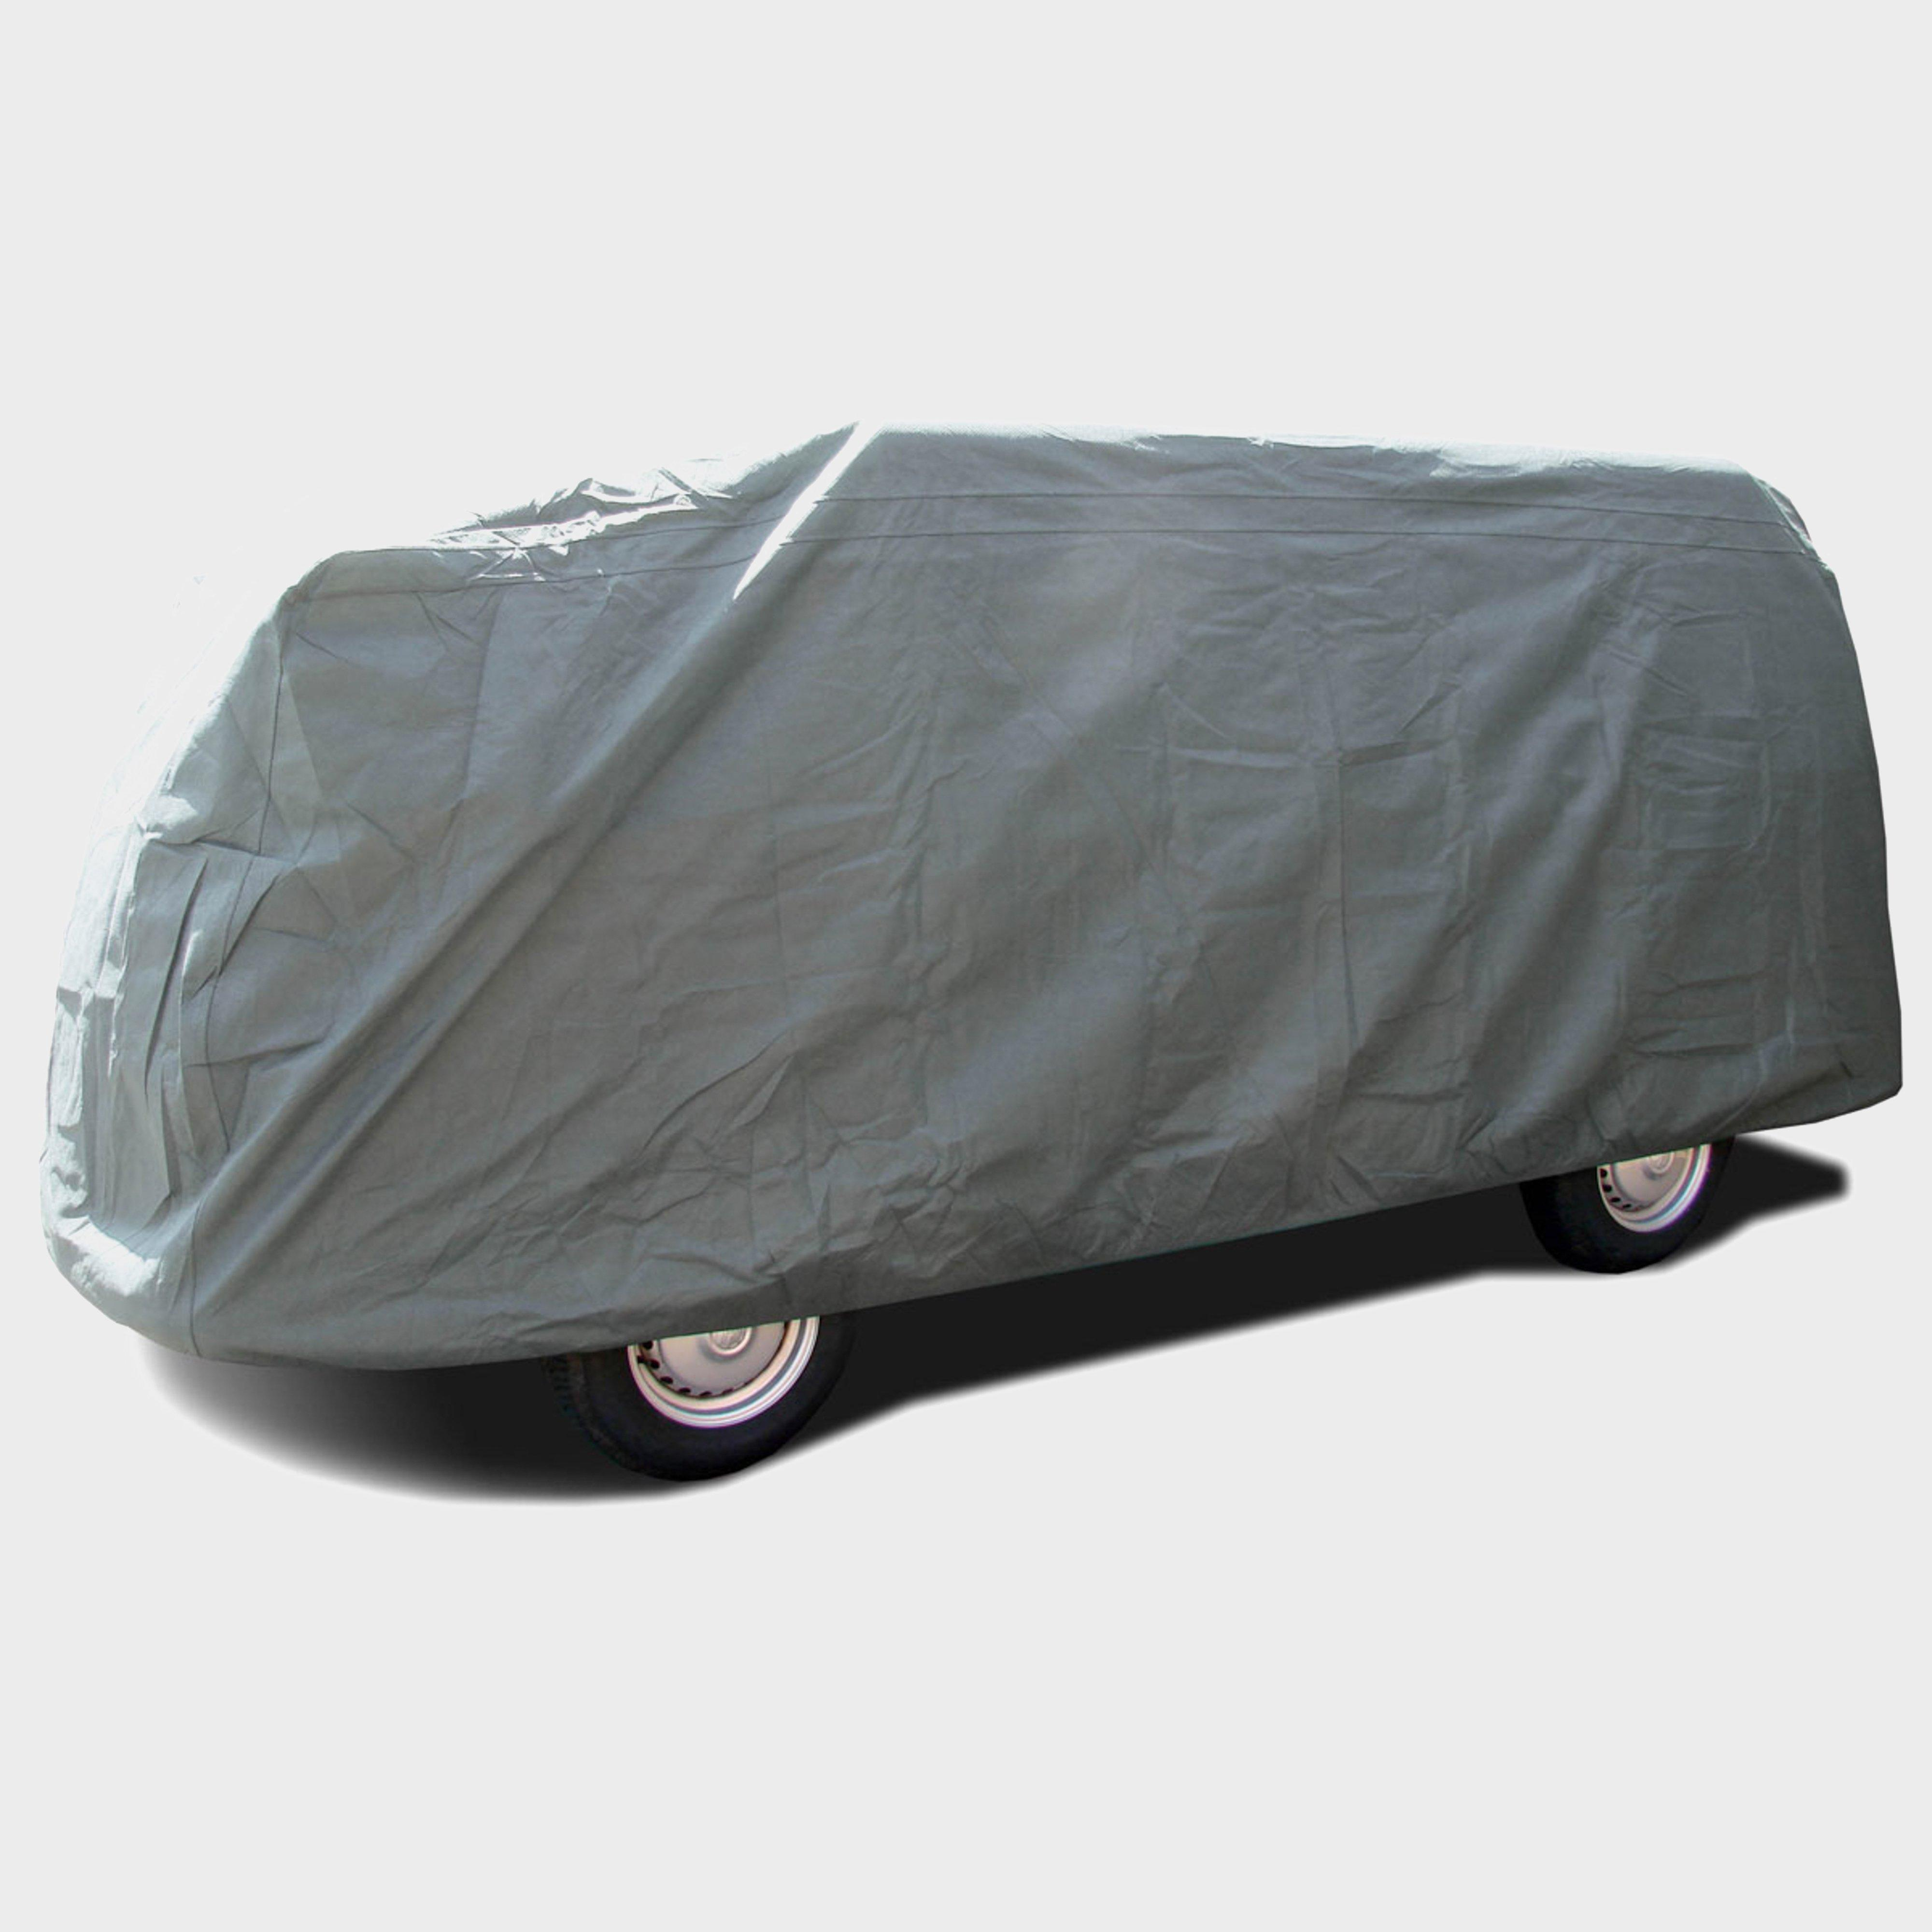 Maypole Vw T2 Camper Van - Cover/cover  Cover/cover